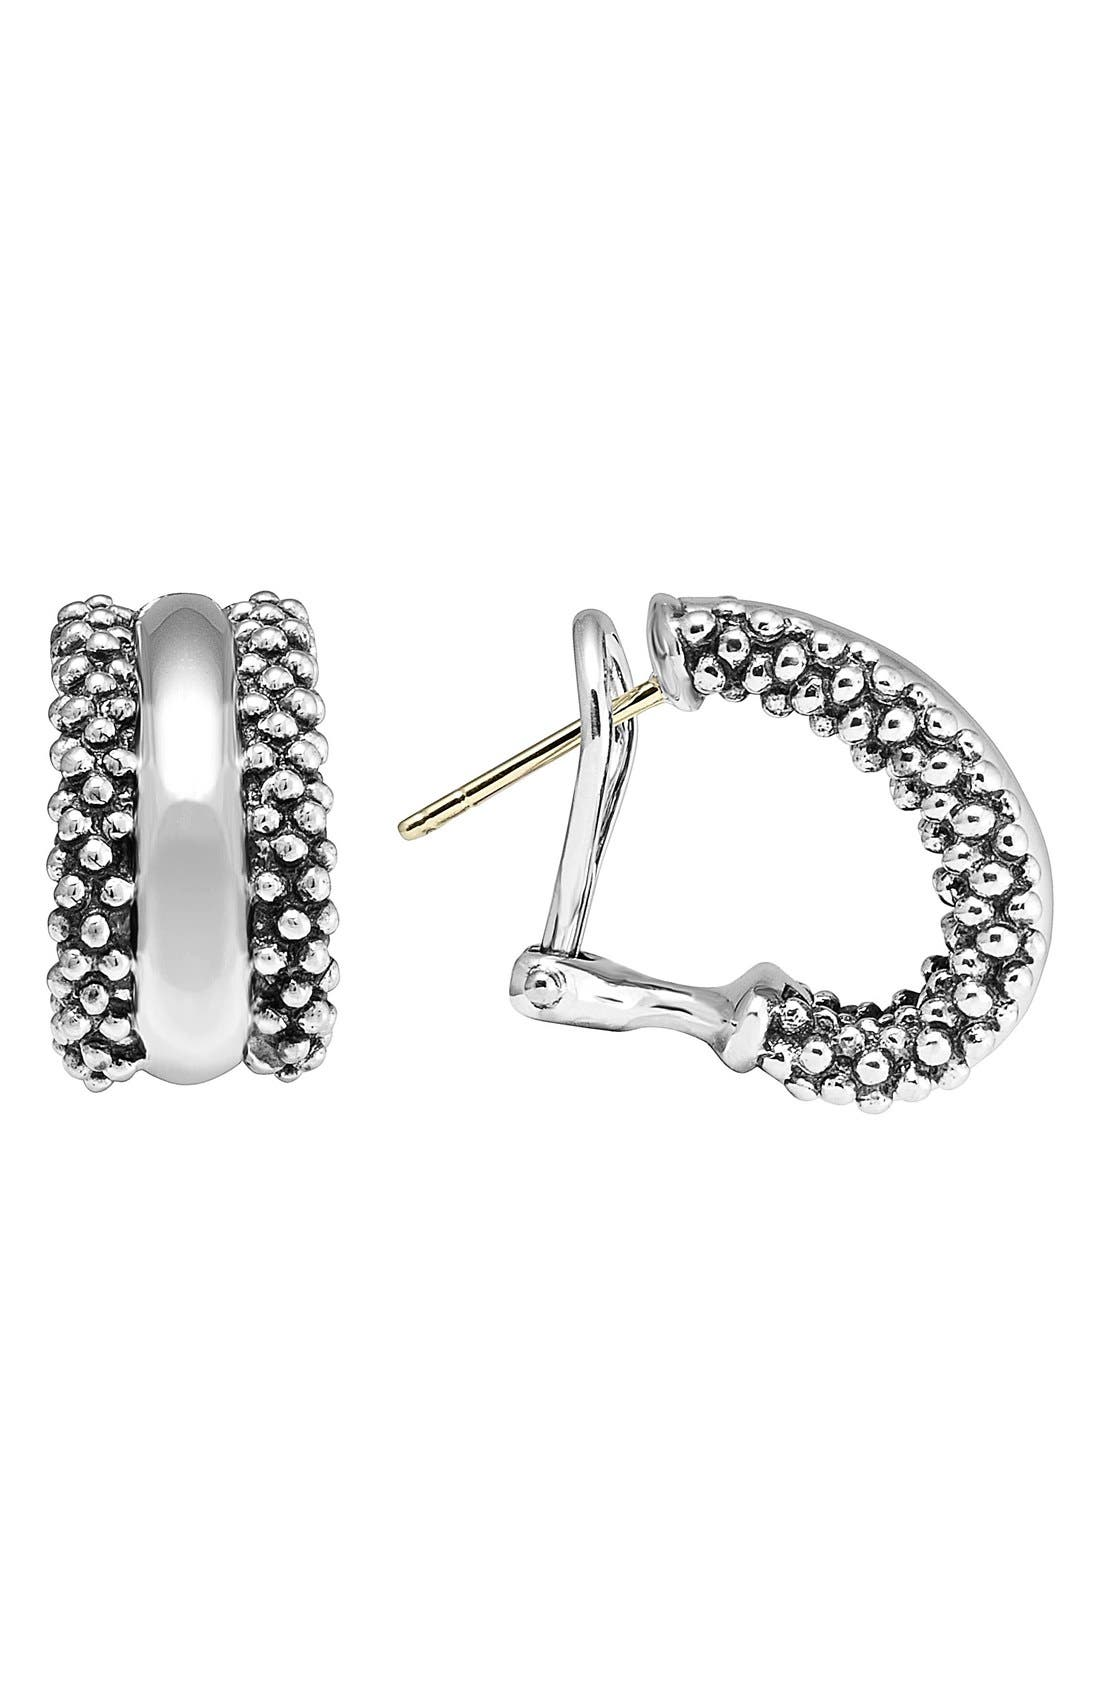 Caviar<sup>™</sup> Sterling Silver Hoop Earrings,                             Main thumbnail 1, color,                             Sterling Silver